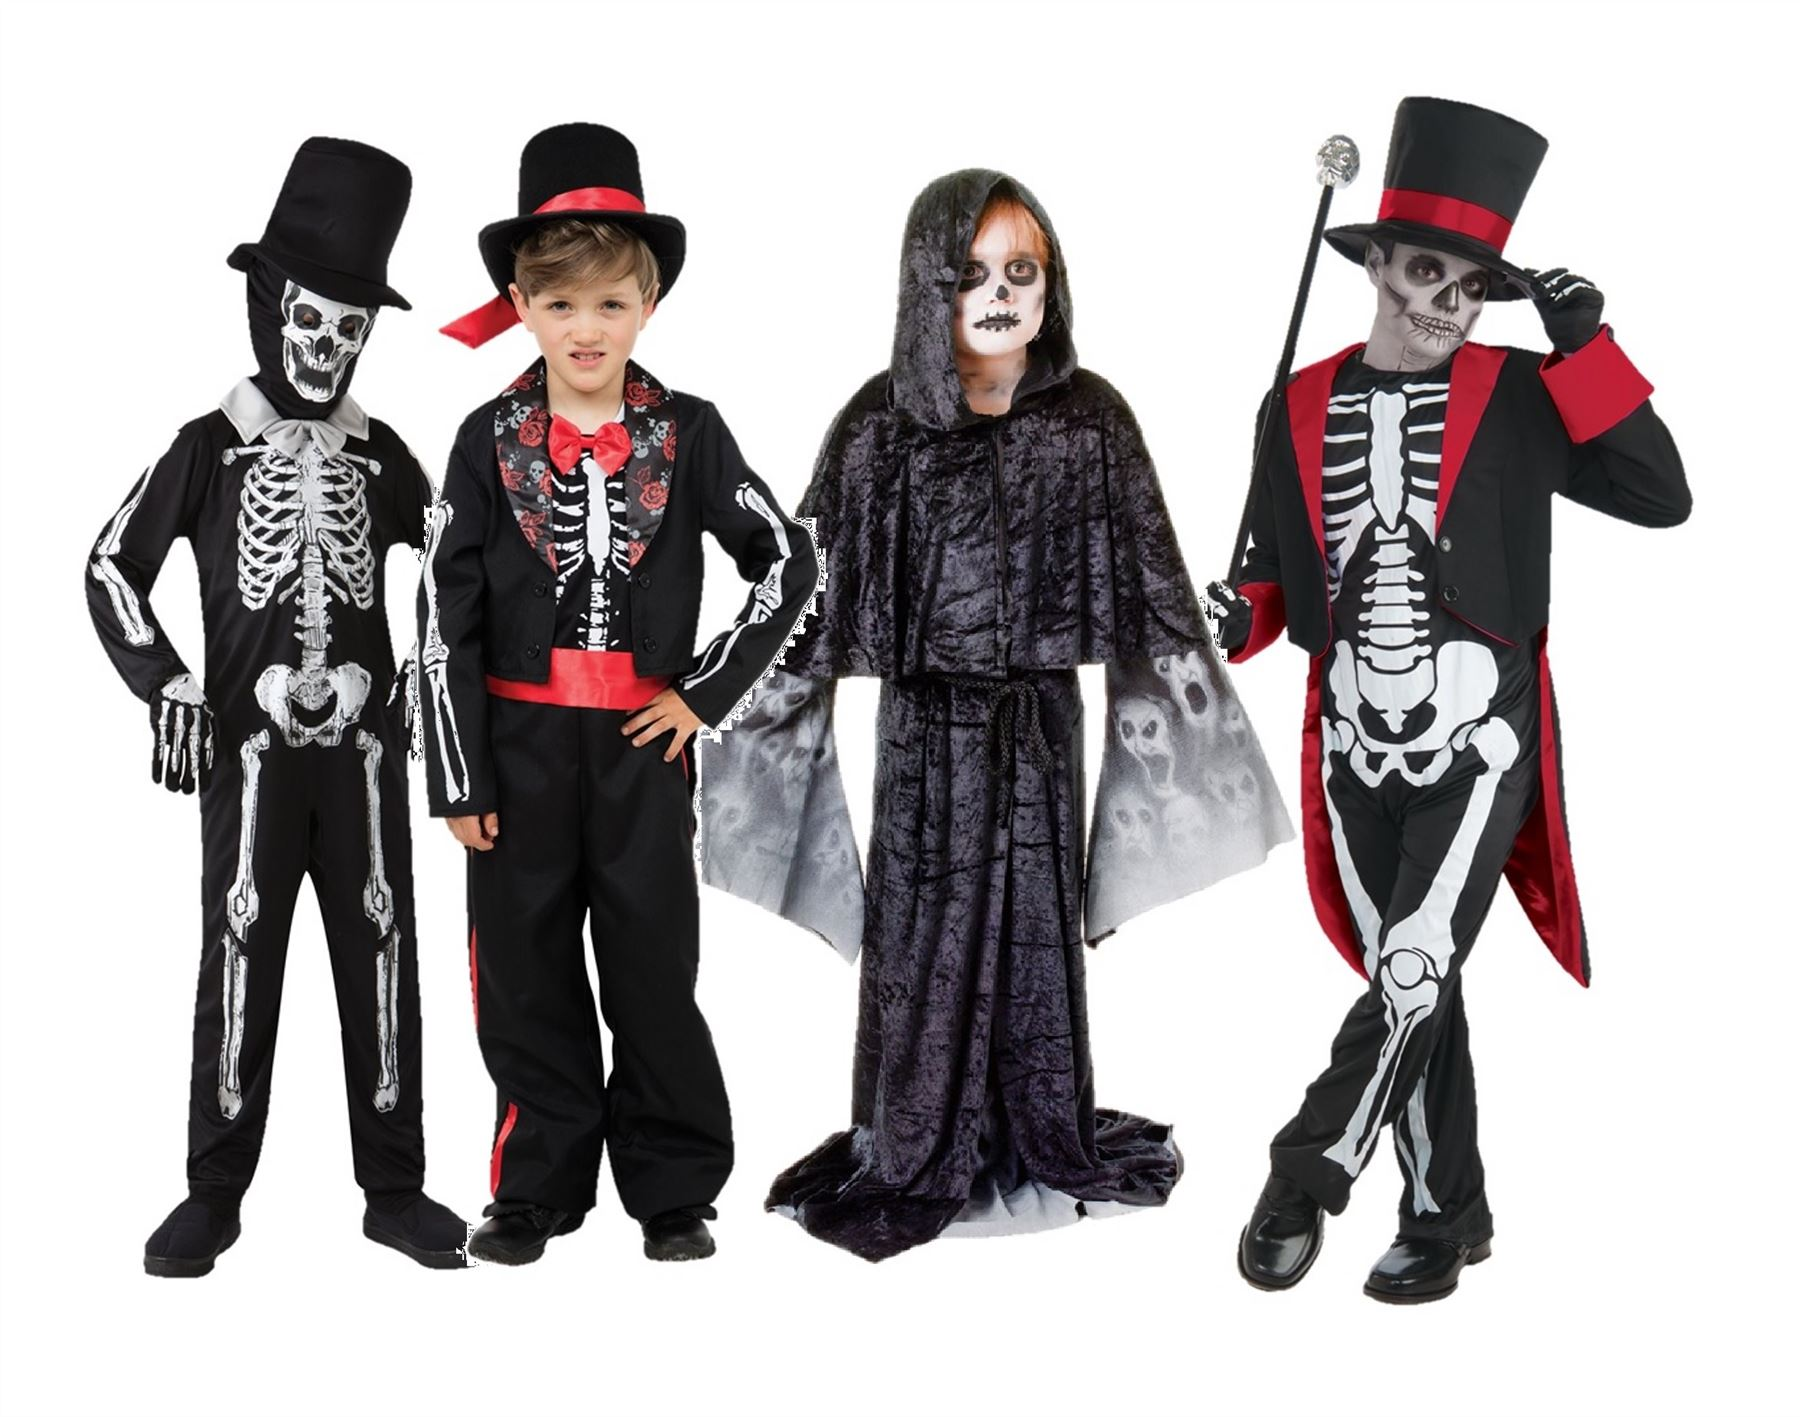 Details about Boys Skeleton Suit Day Of The Dead Groom Costume Halloween Fancy Dress Kids